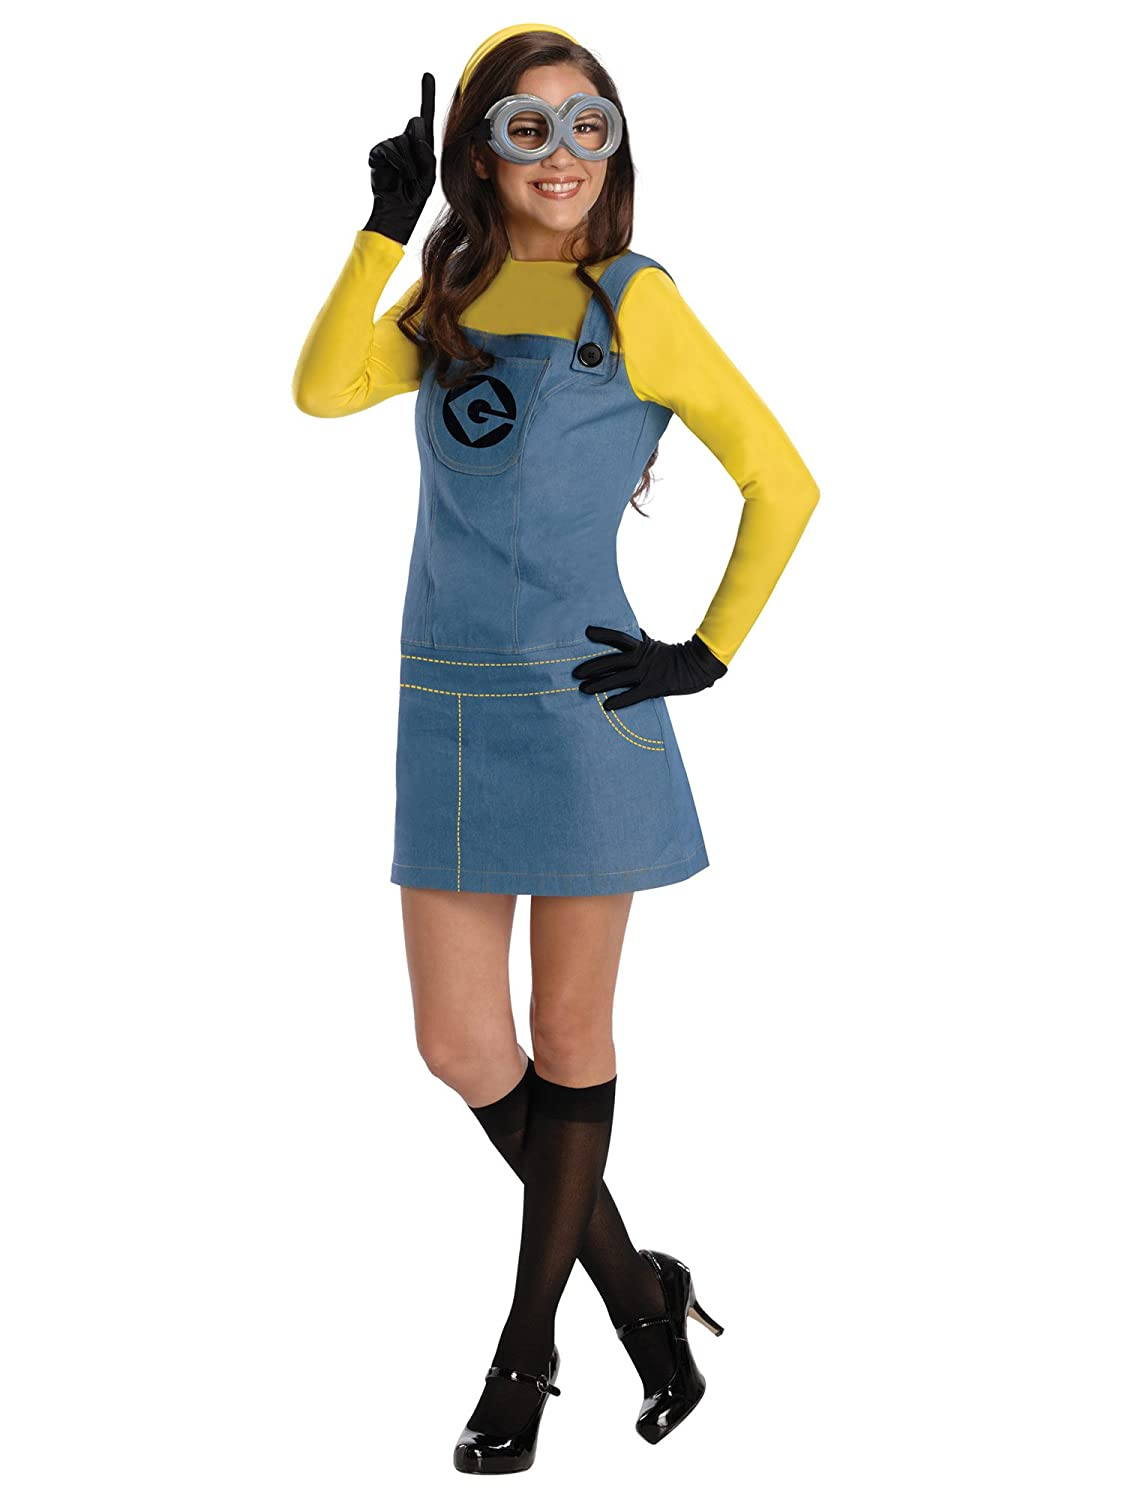 Amazon.com Rubieu0027s Womenu0027s Despicable Me 2 Minion Costume with Accessories Clothing  sc 1 st  Amazon.com & Amazon.com: Rubieu0027s Womenu0027s Despicable Me 2 Minion Costume with ...